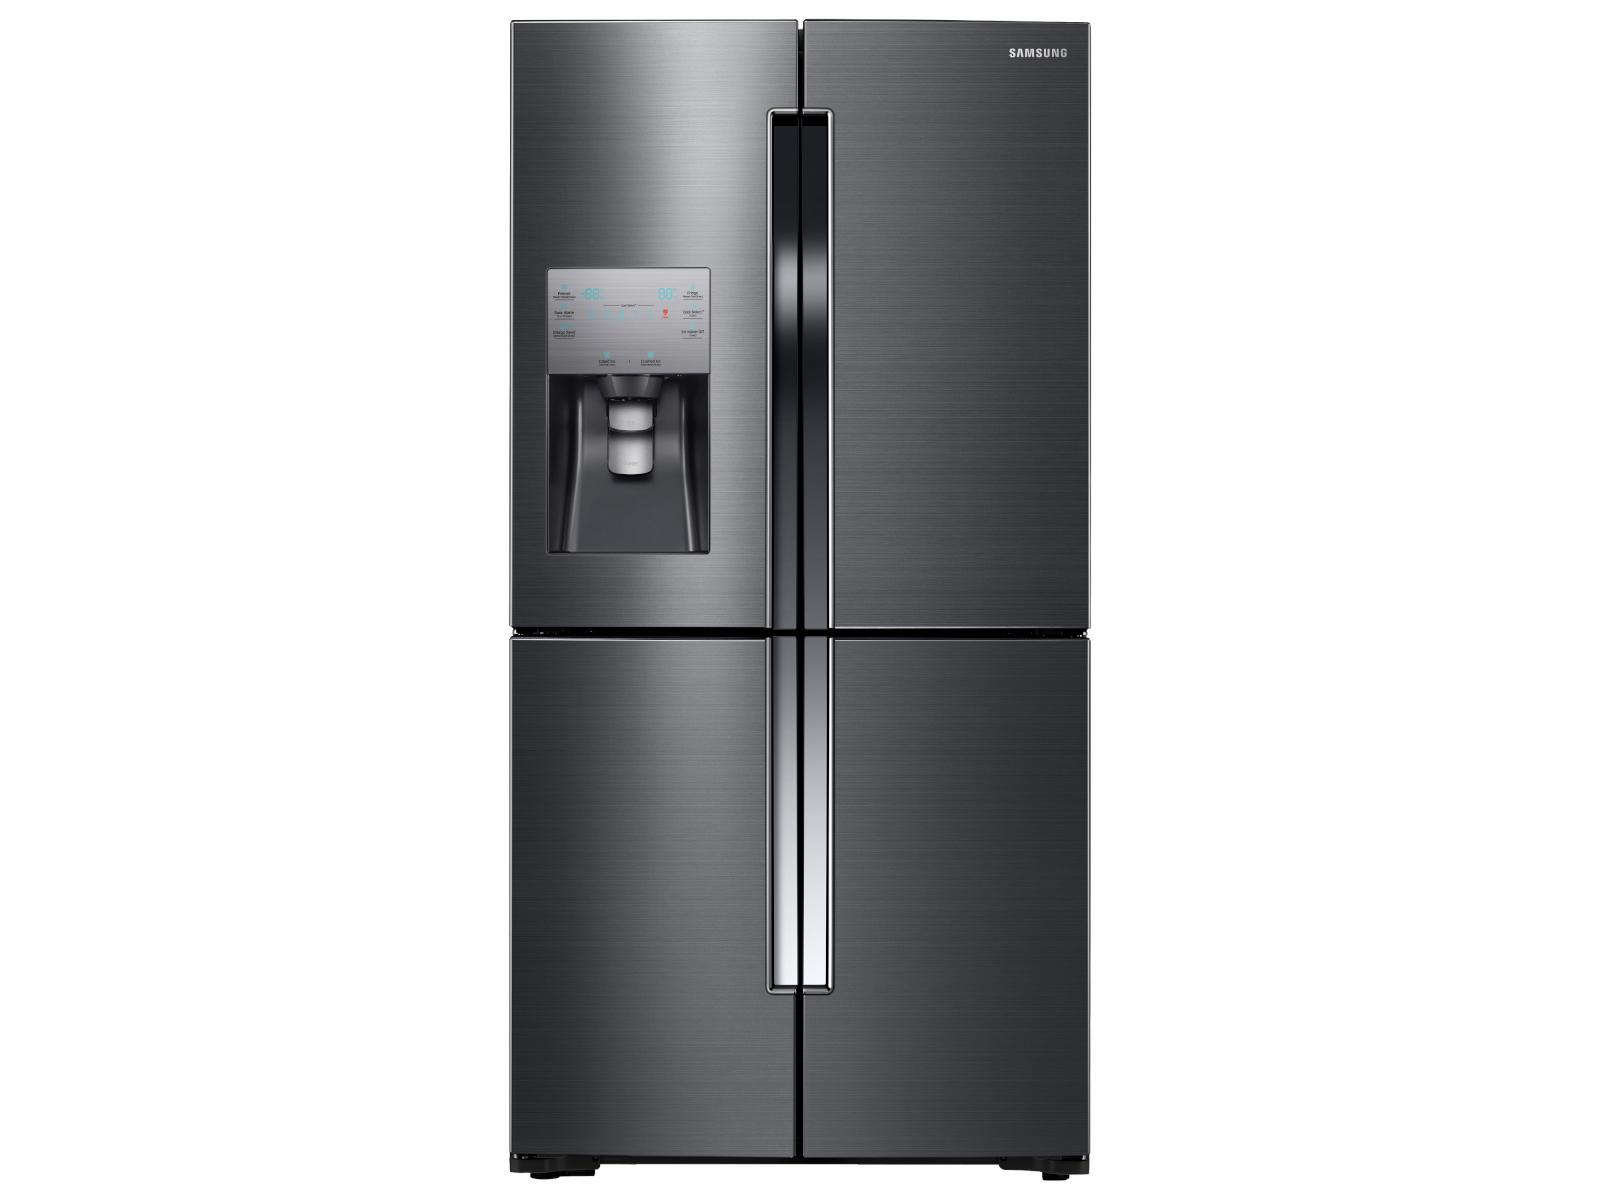 Rf23j9011sr Samsung Rf23j9011sr French Door Refrigerators